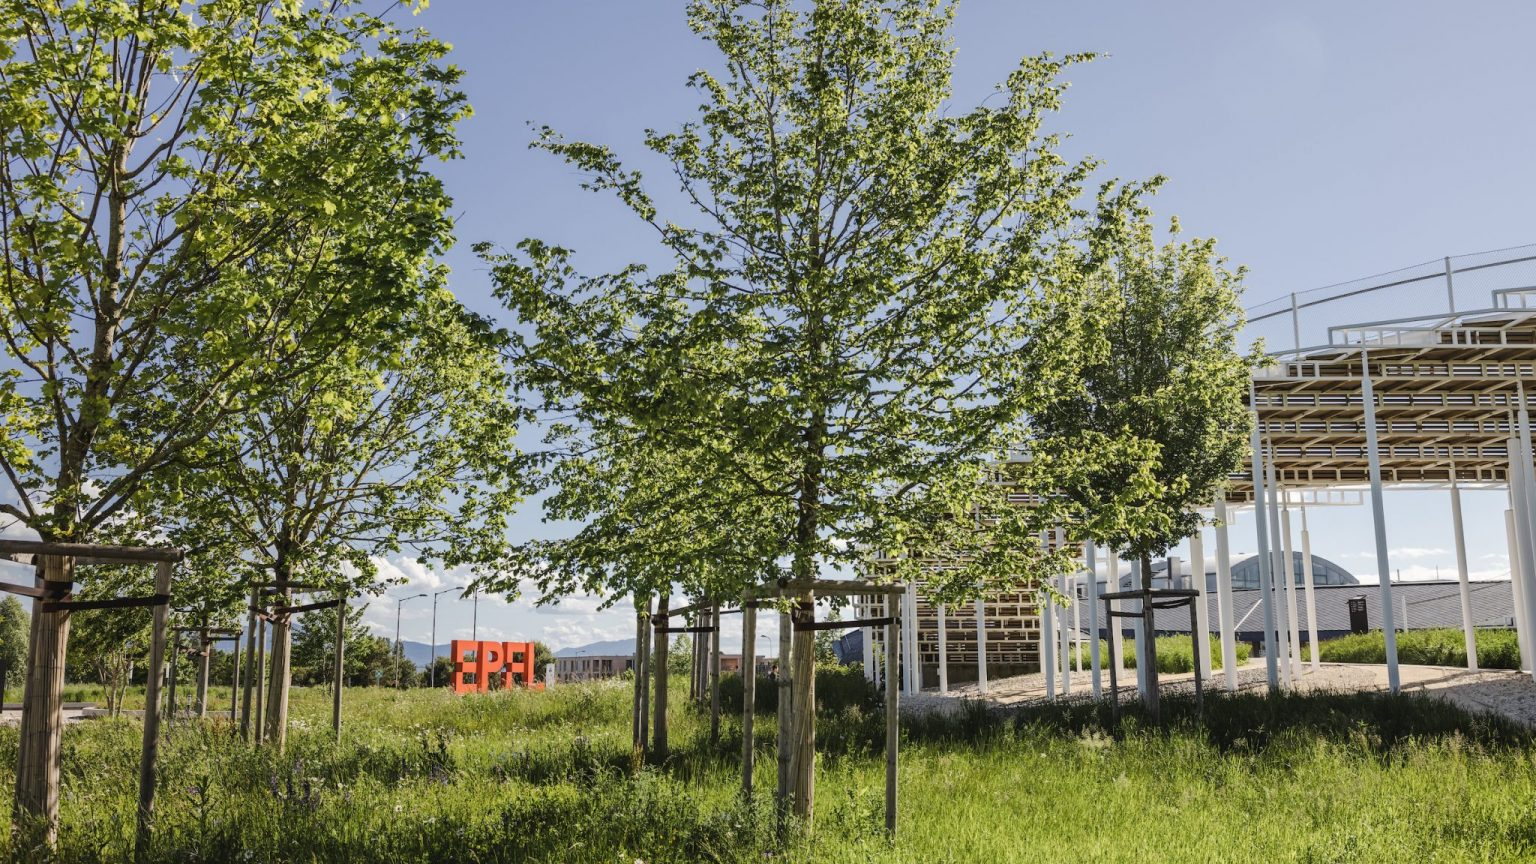 EPFL campus : view on trees and Agora by Niels Ackermann, Lundi13